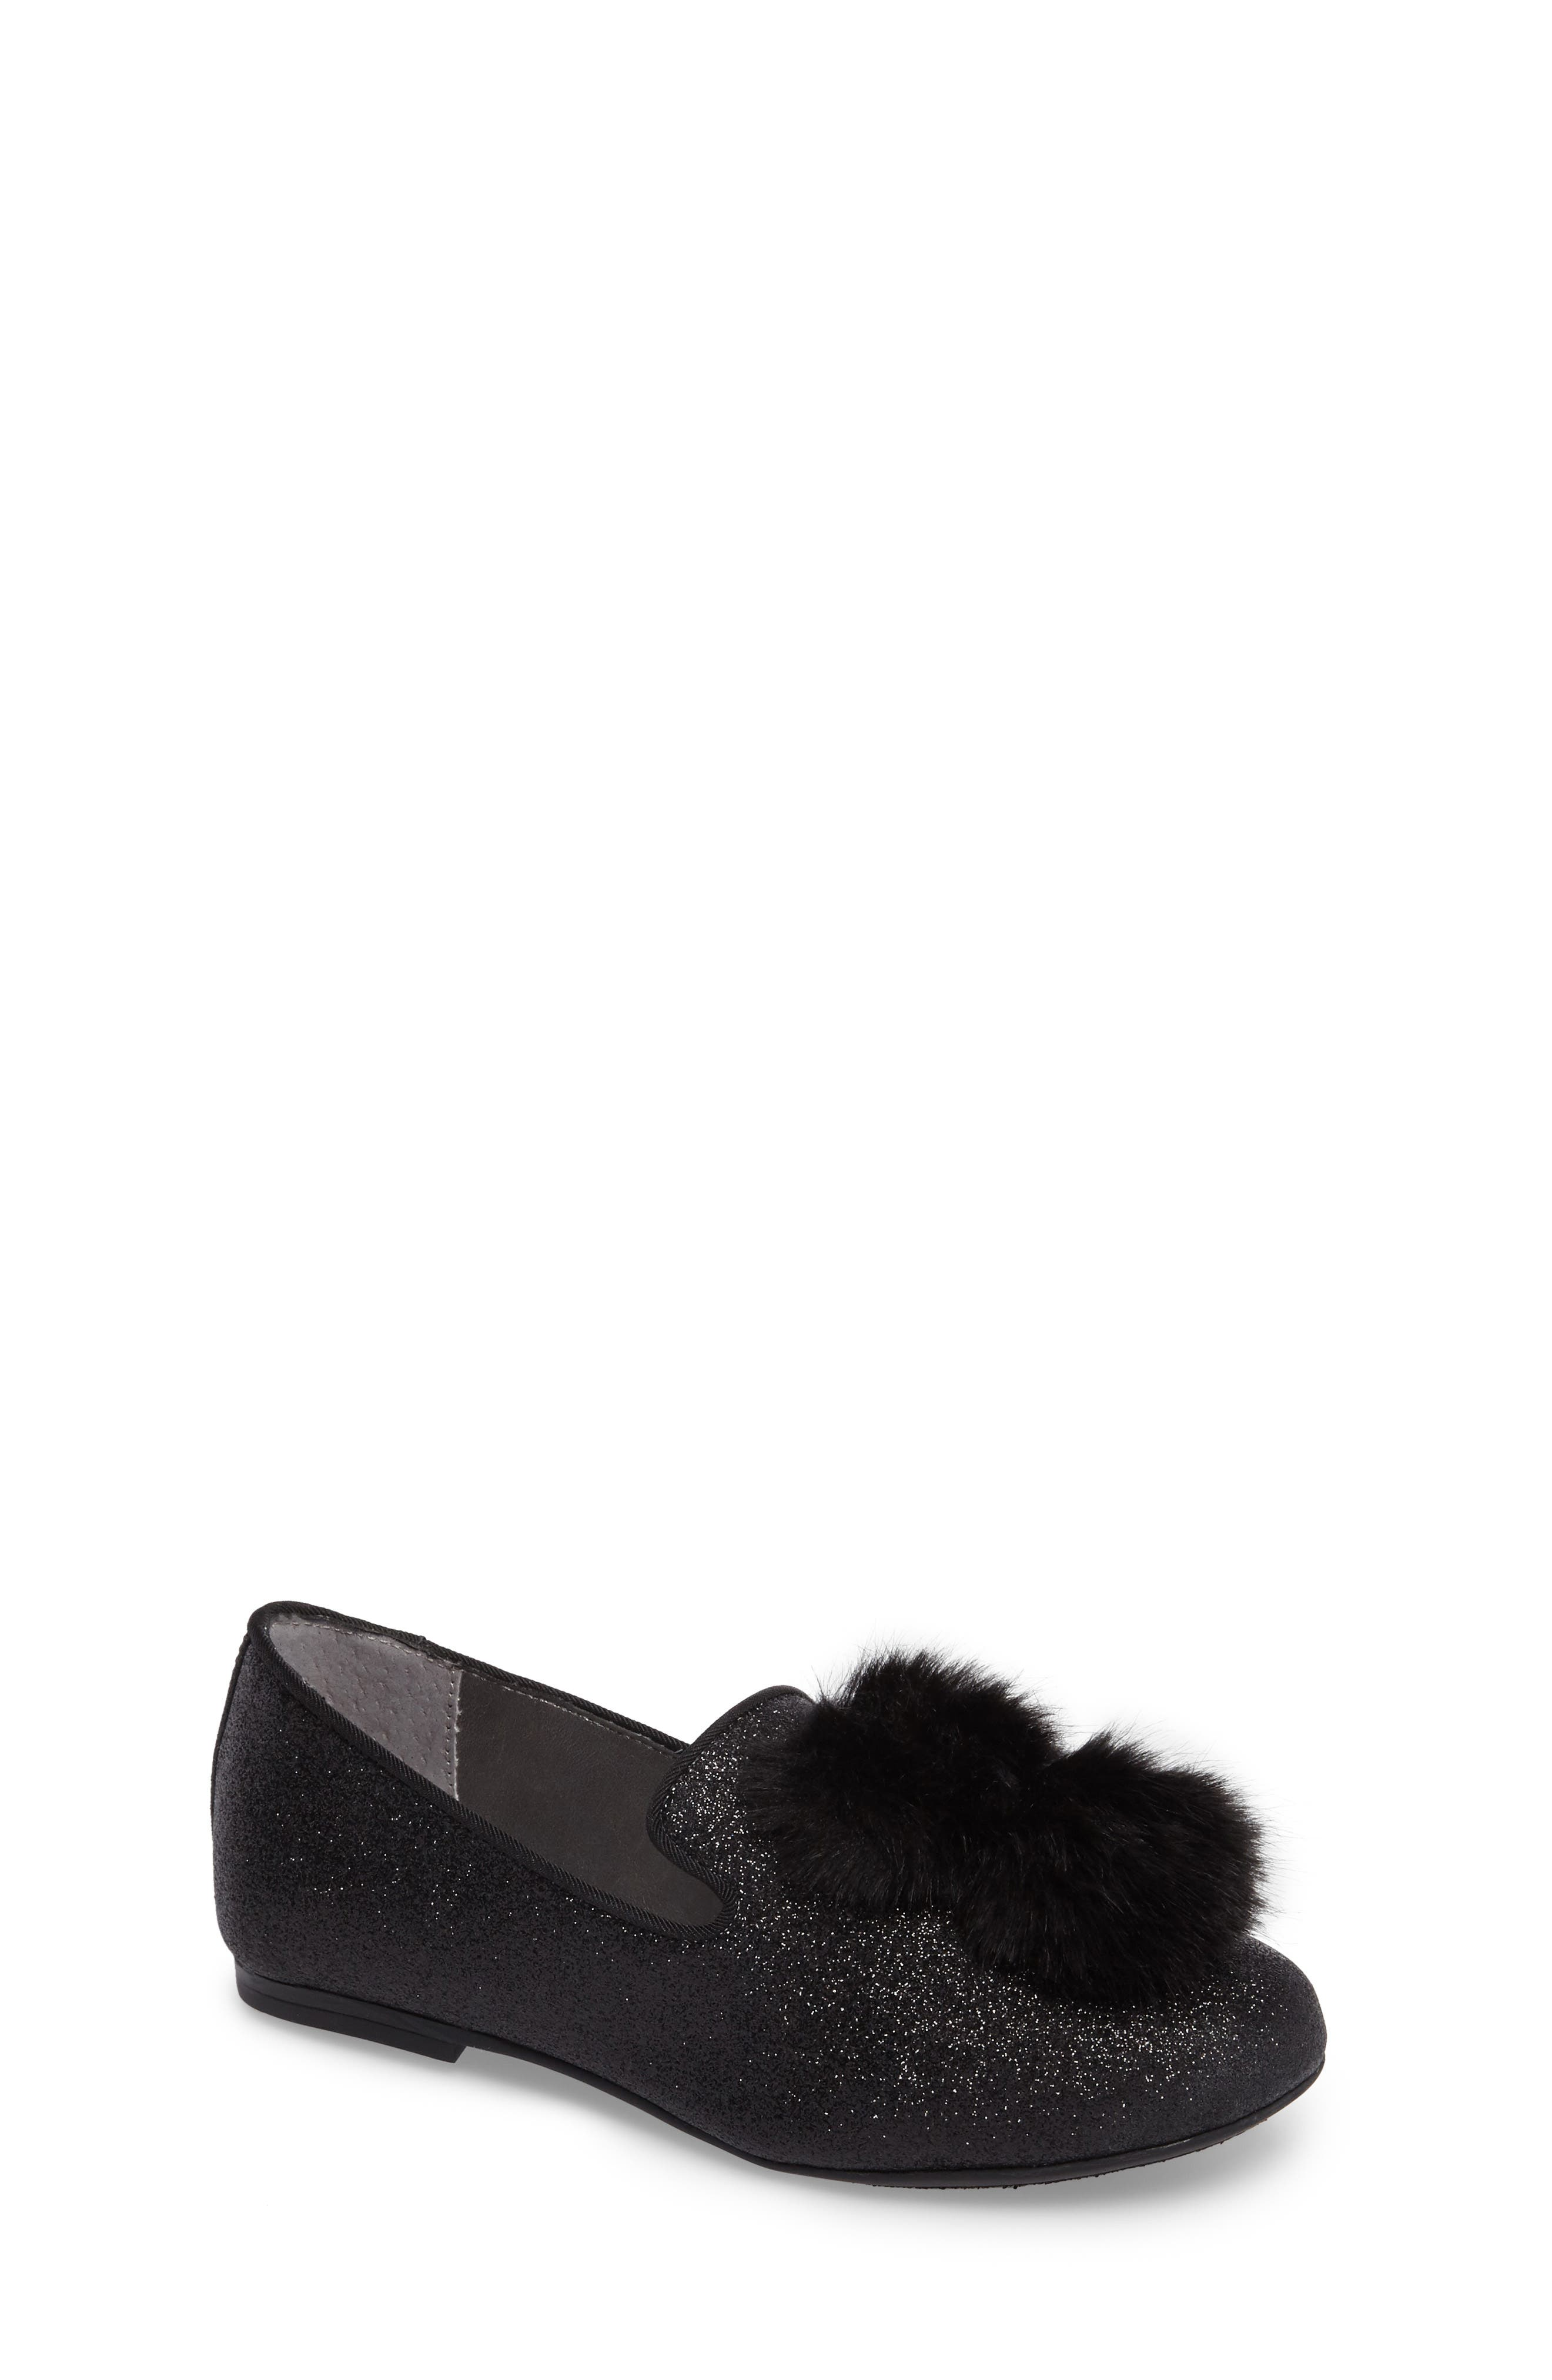 Vince Camuto Caela Faux Fur Loafer (Toddler, Little Kid & Big Kid)